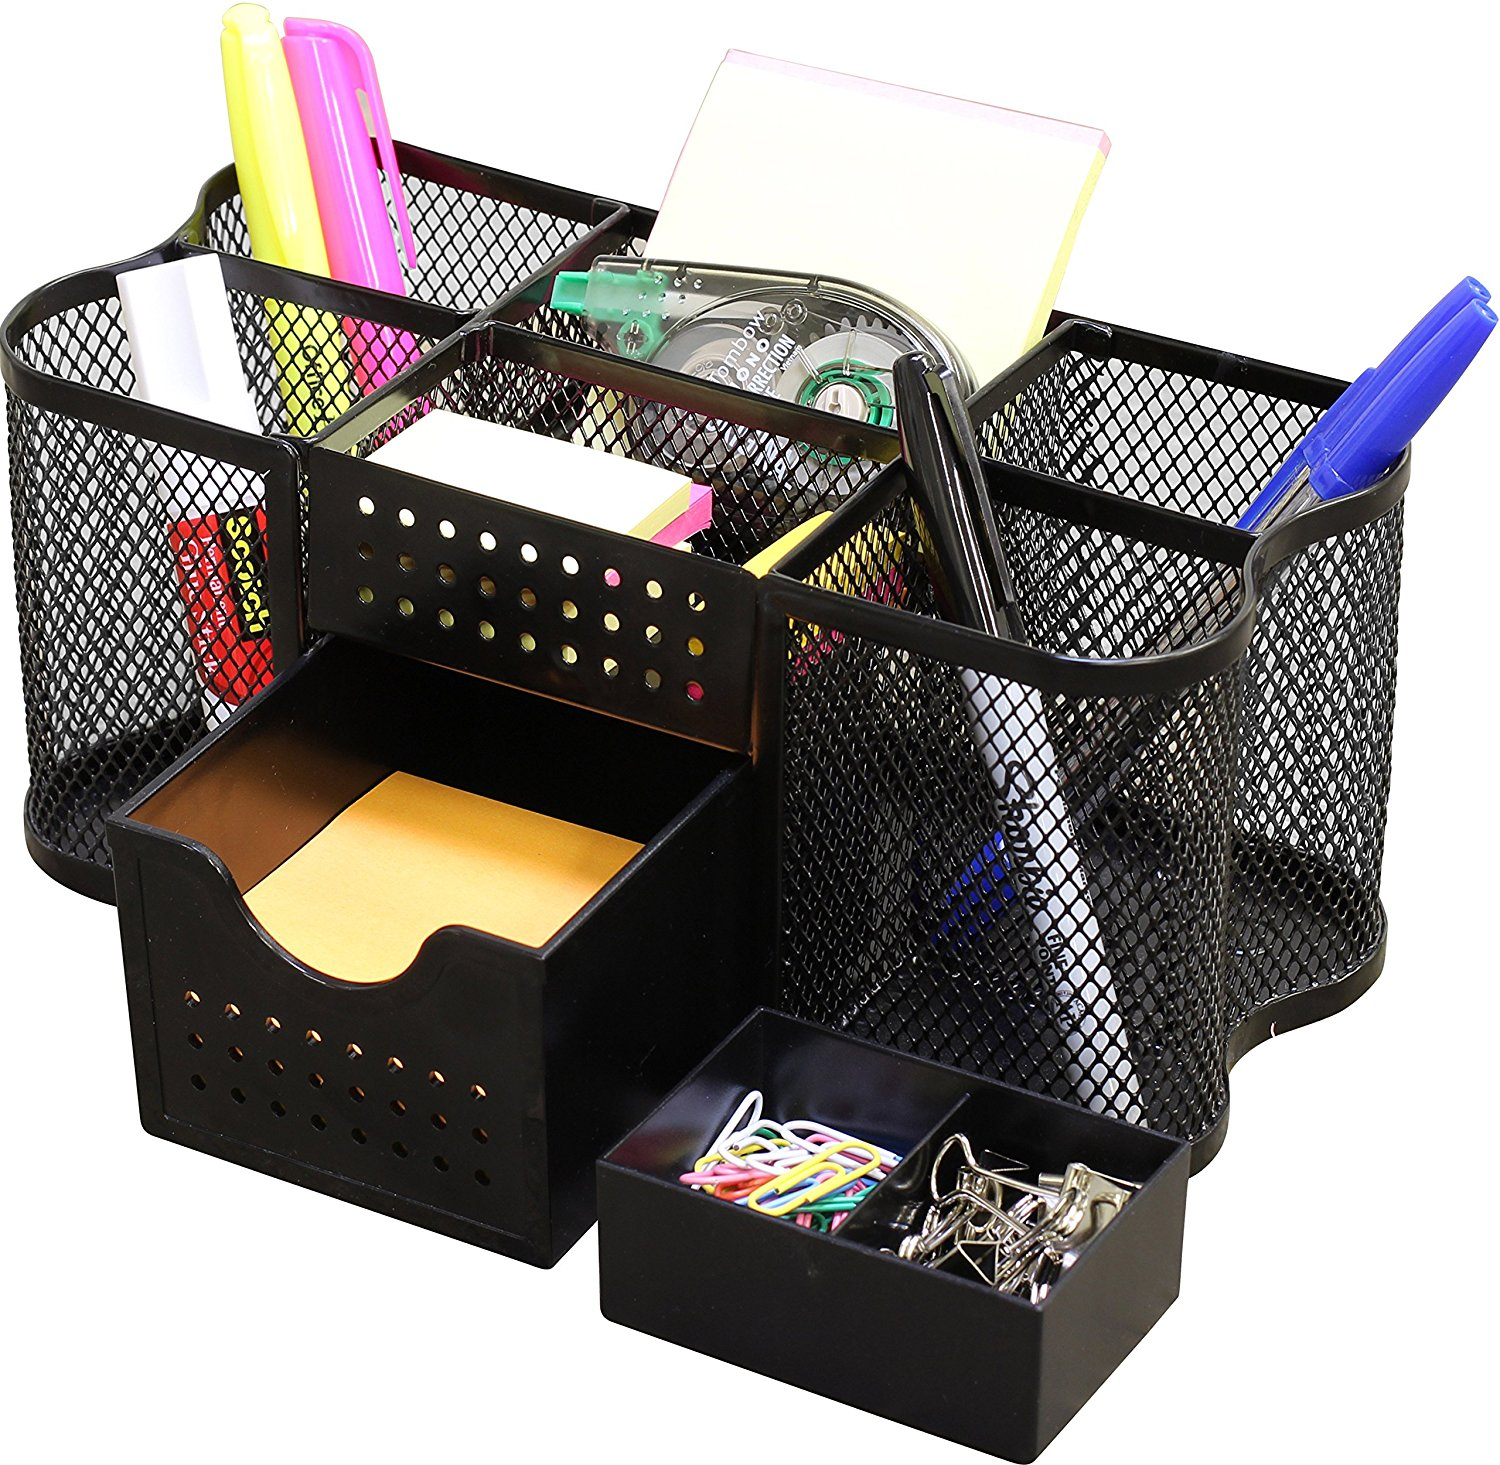 Desk Organizers | Countertop Mail Organizer | Organizing Your Desk